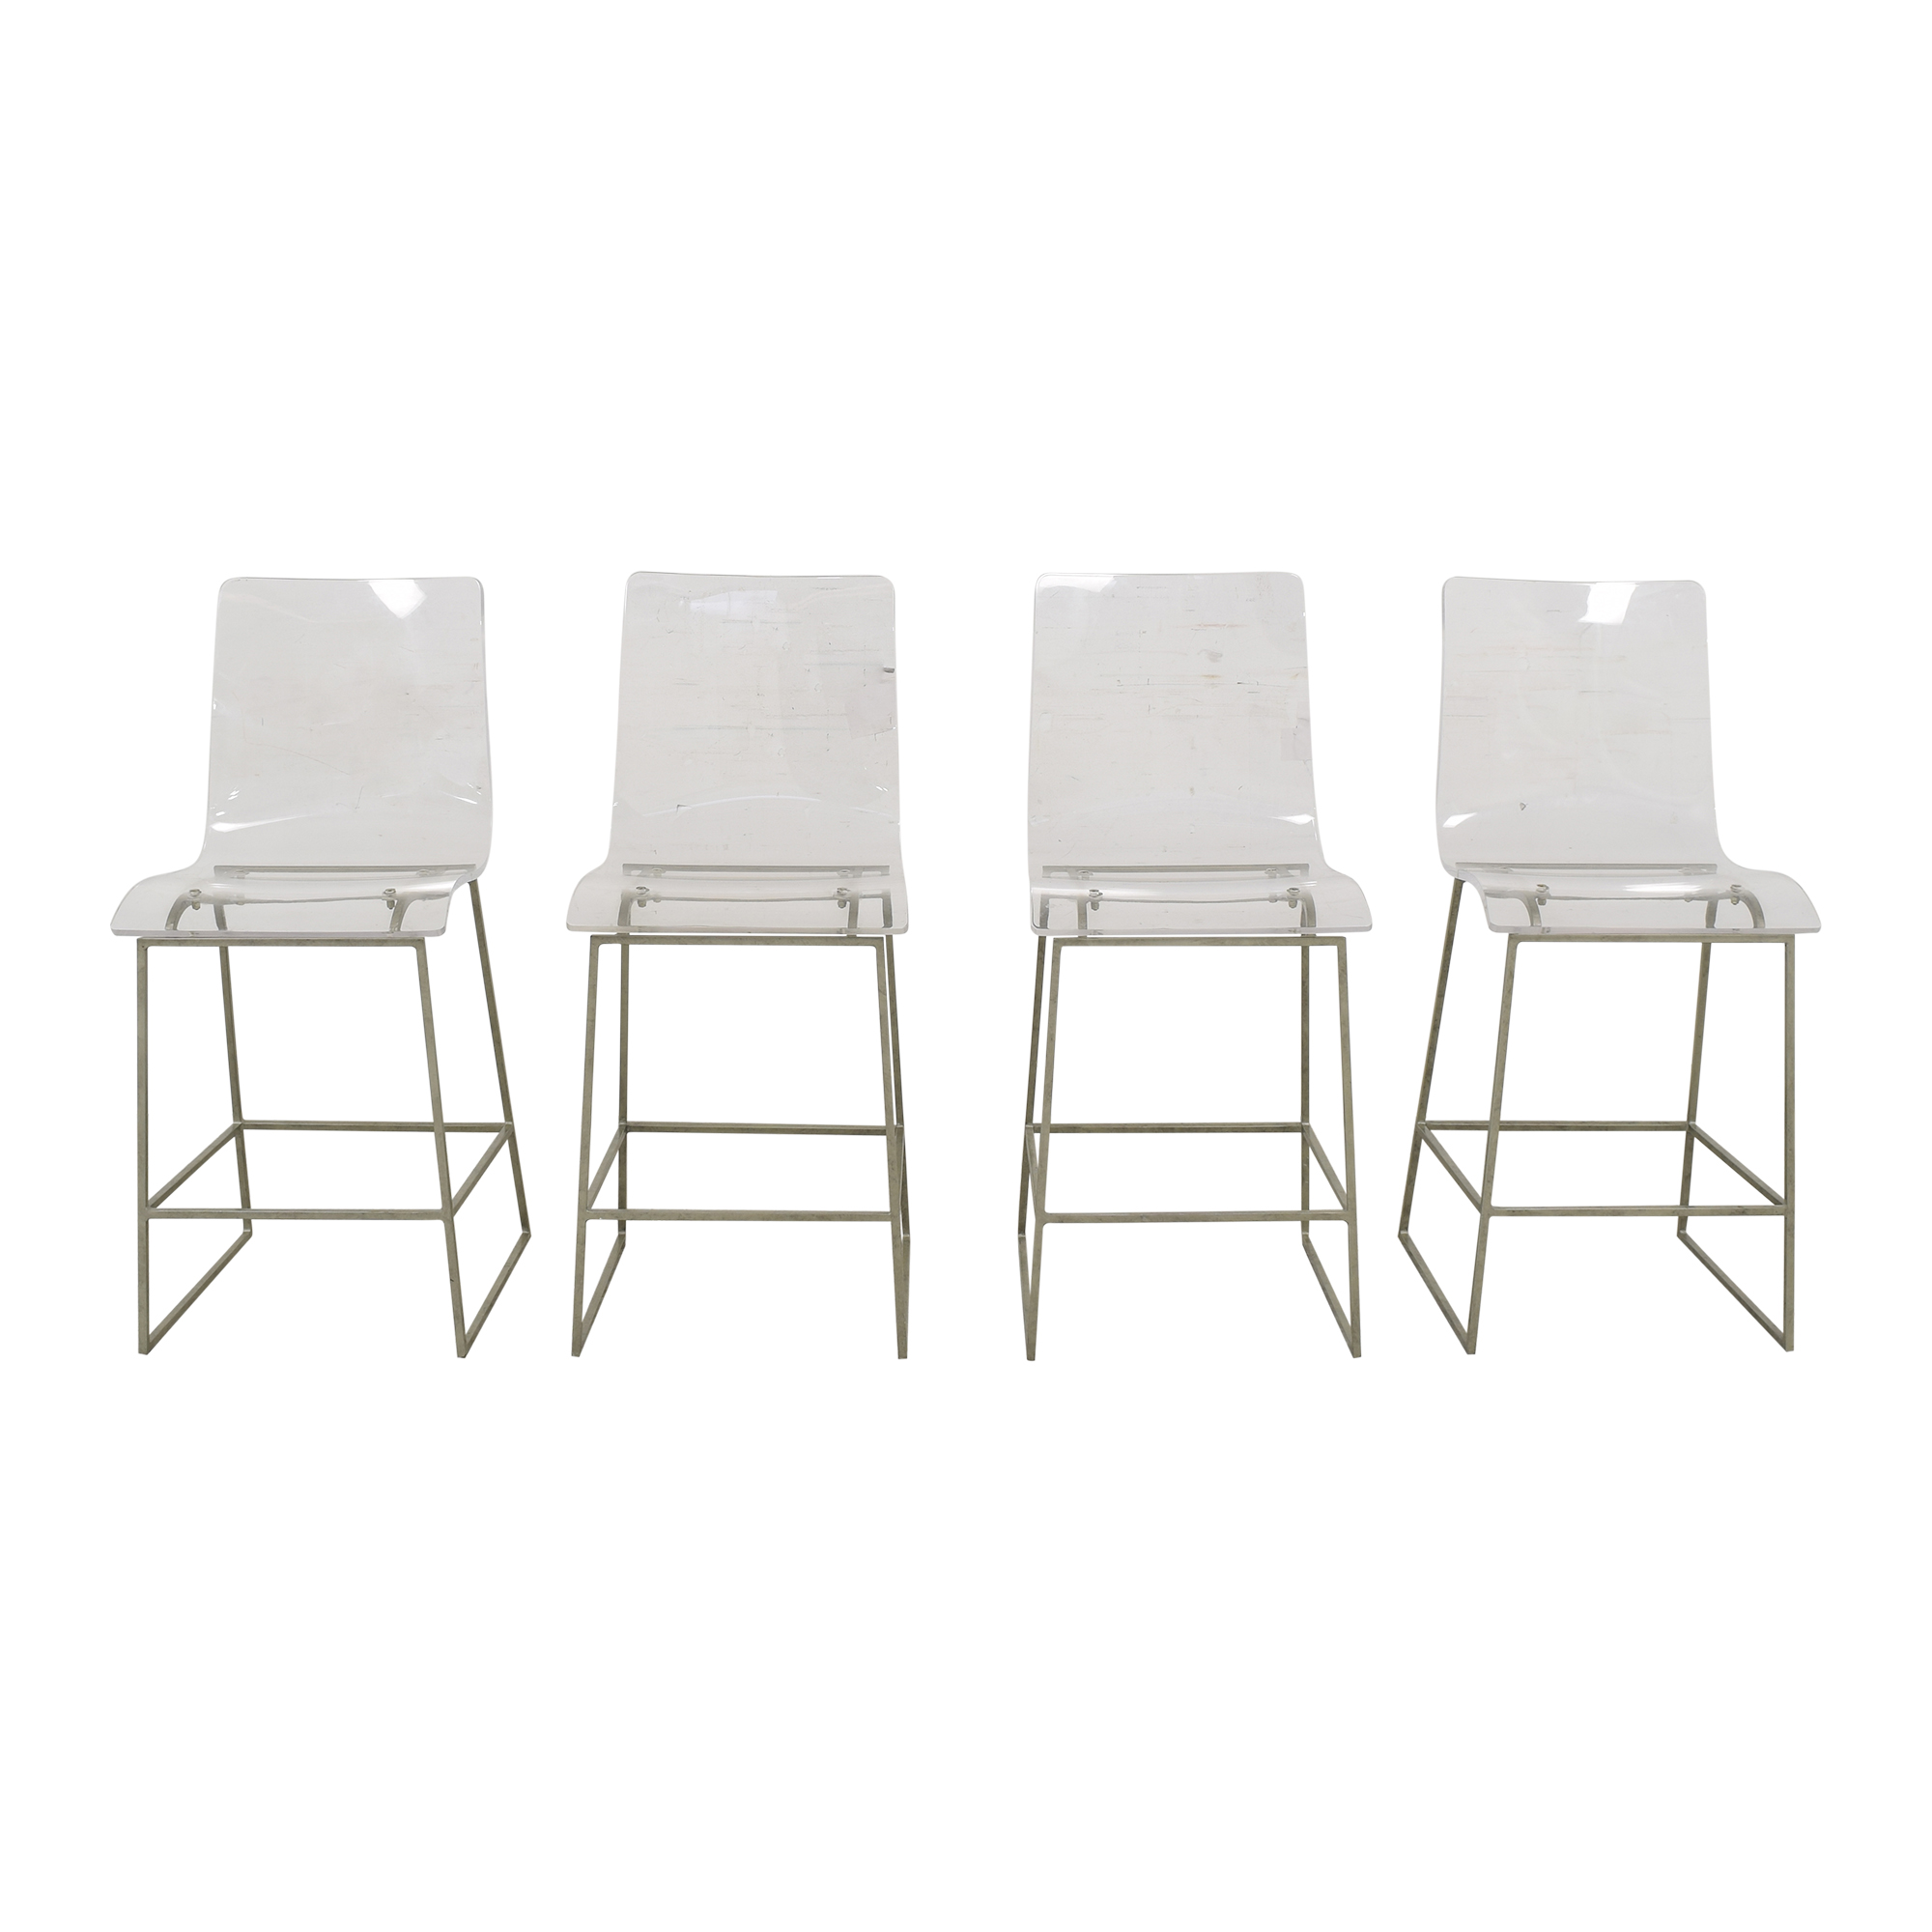 buy Lillian August Lillian August Counter Stools online